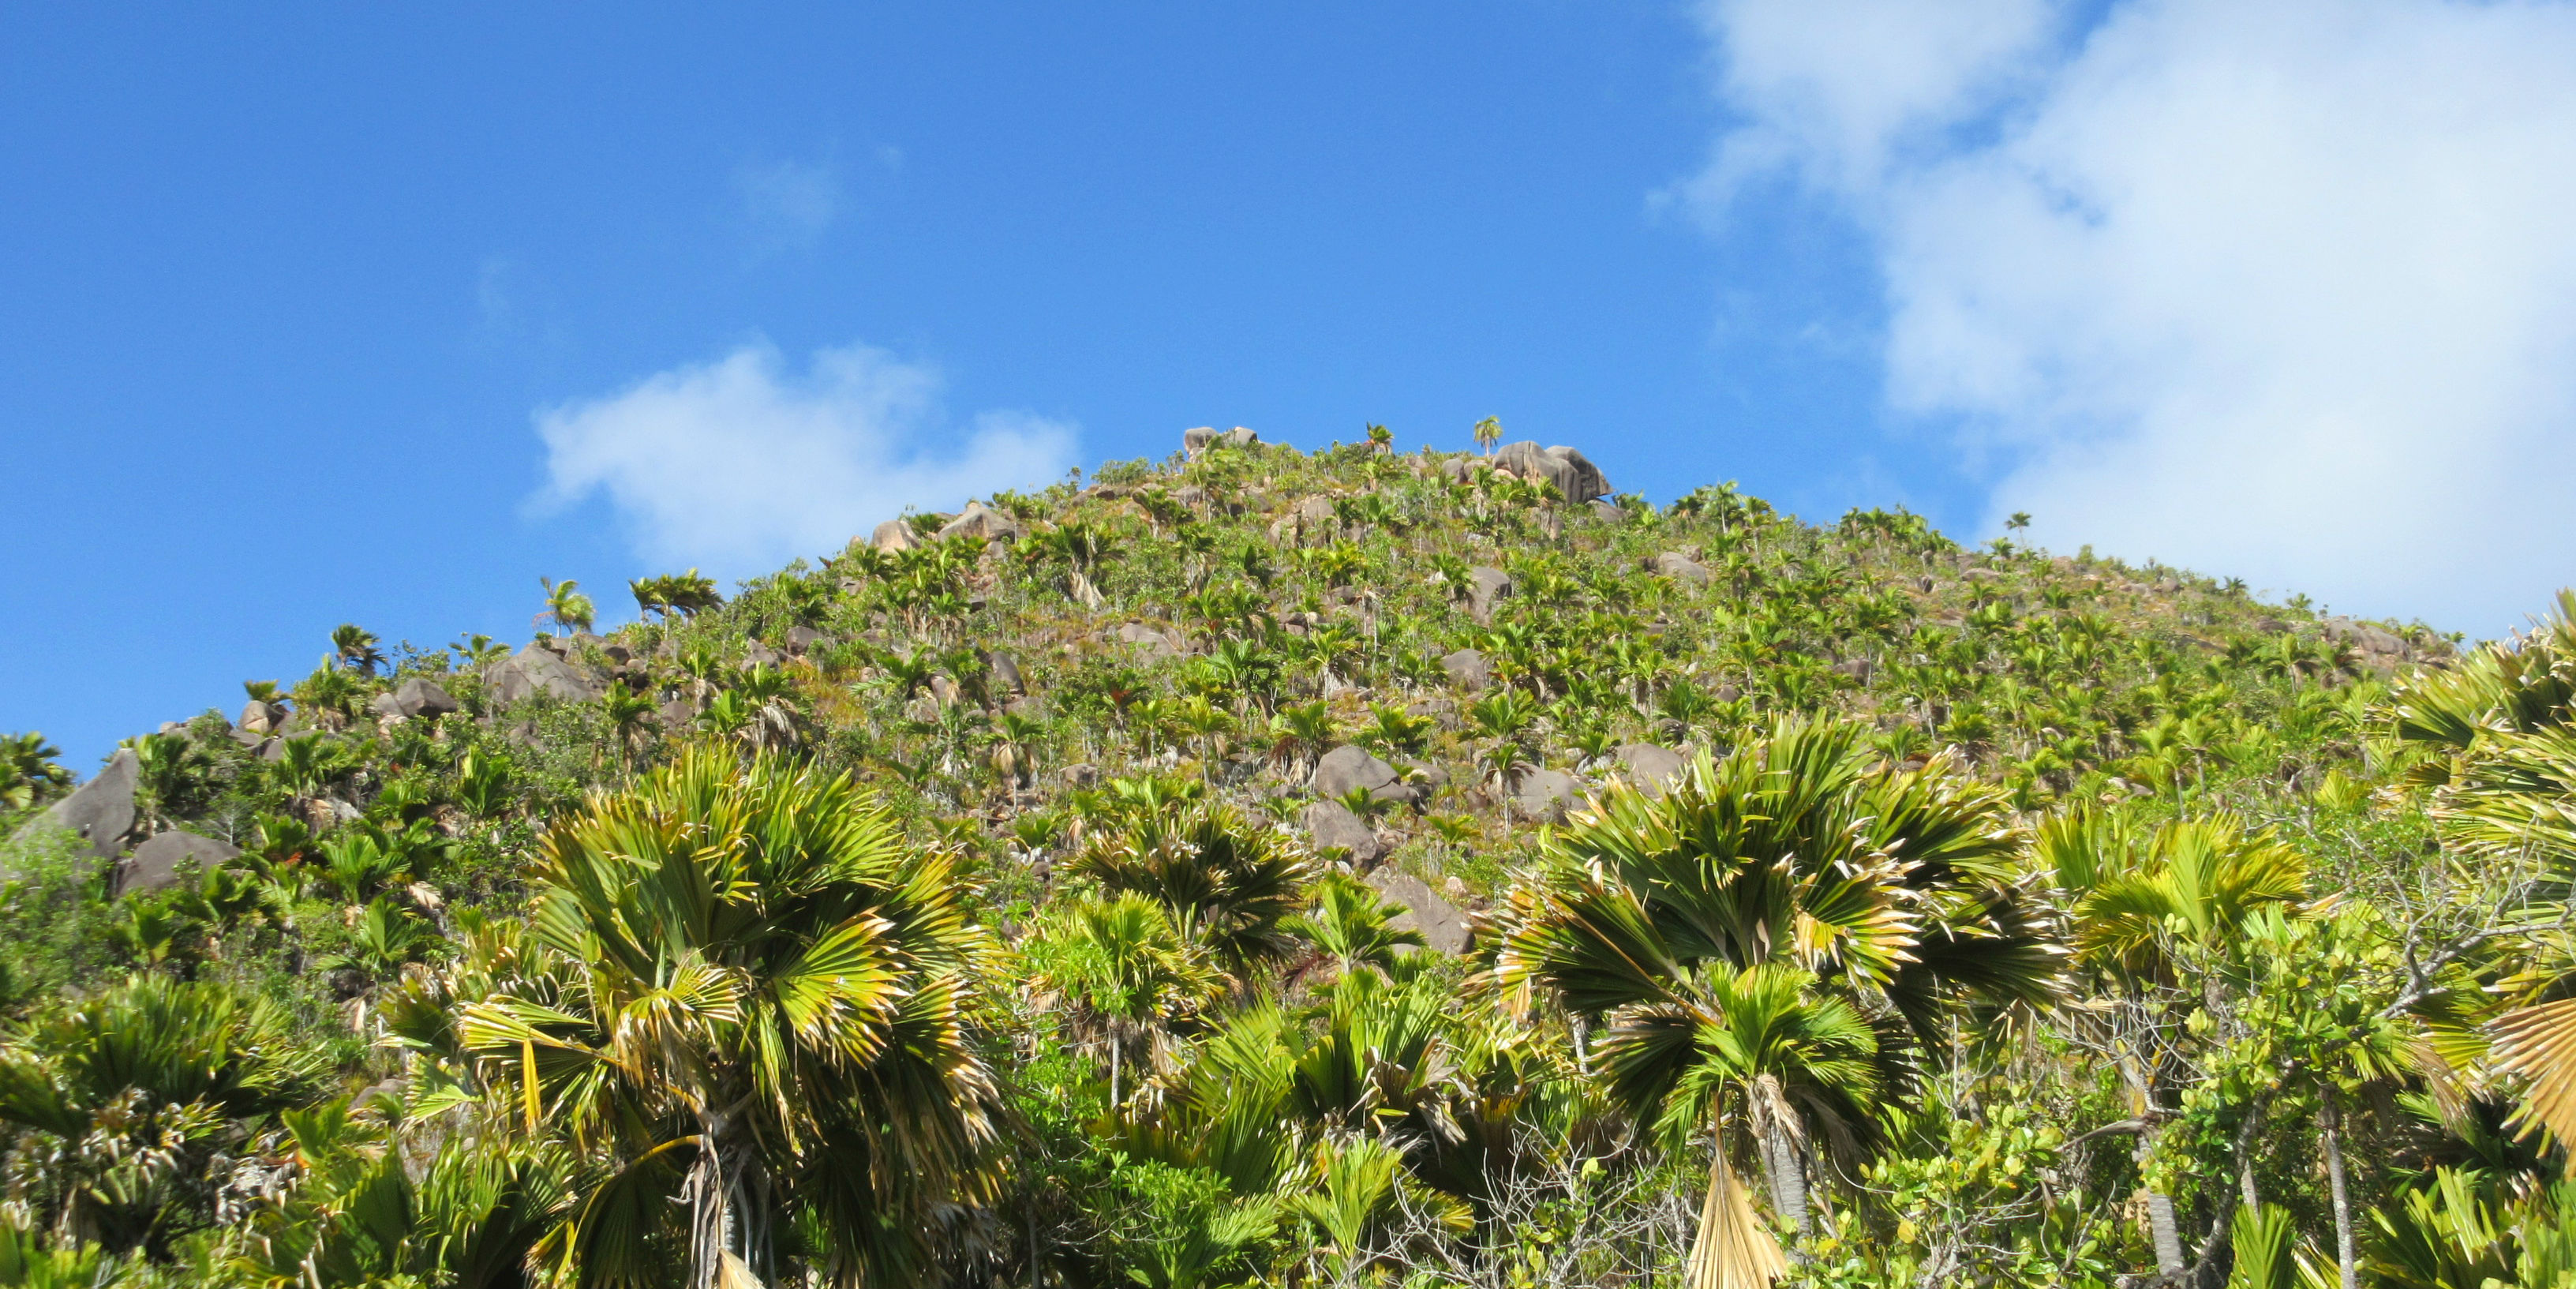 The route to the peak of this hill is peppered with mangroves and coco de mer trees.